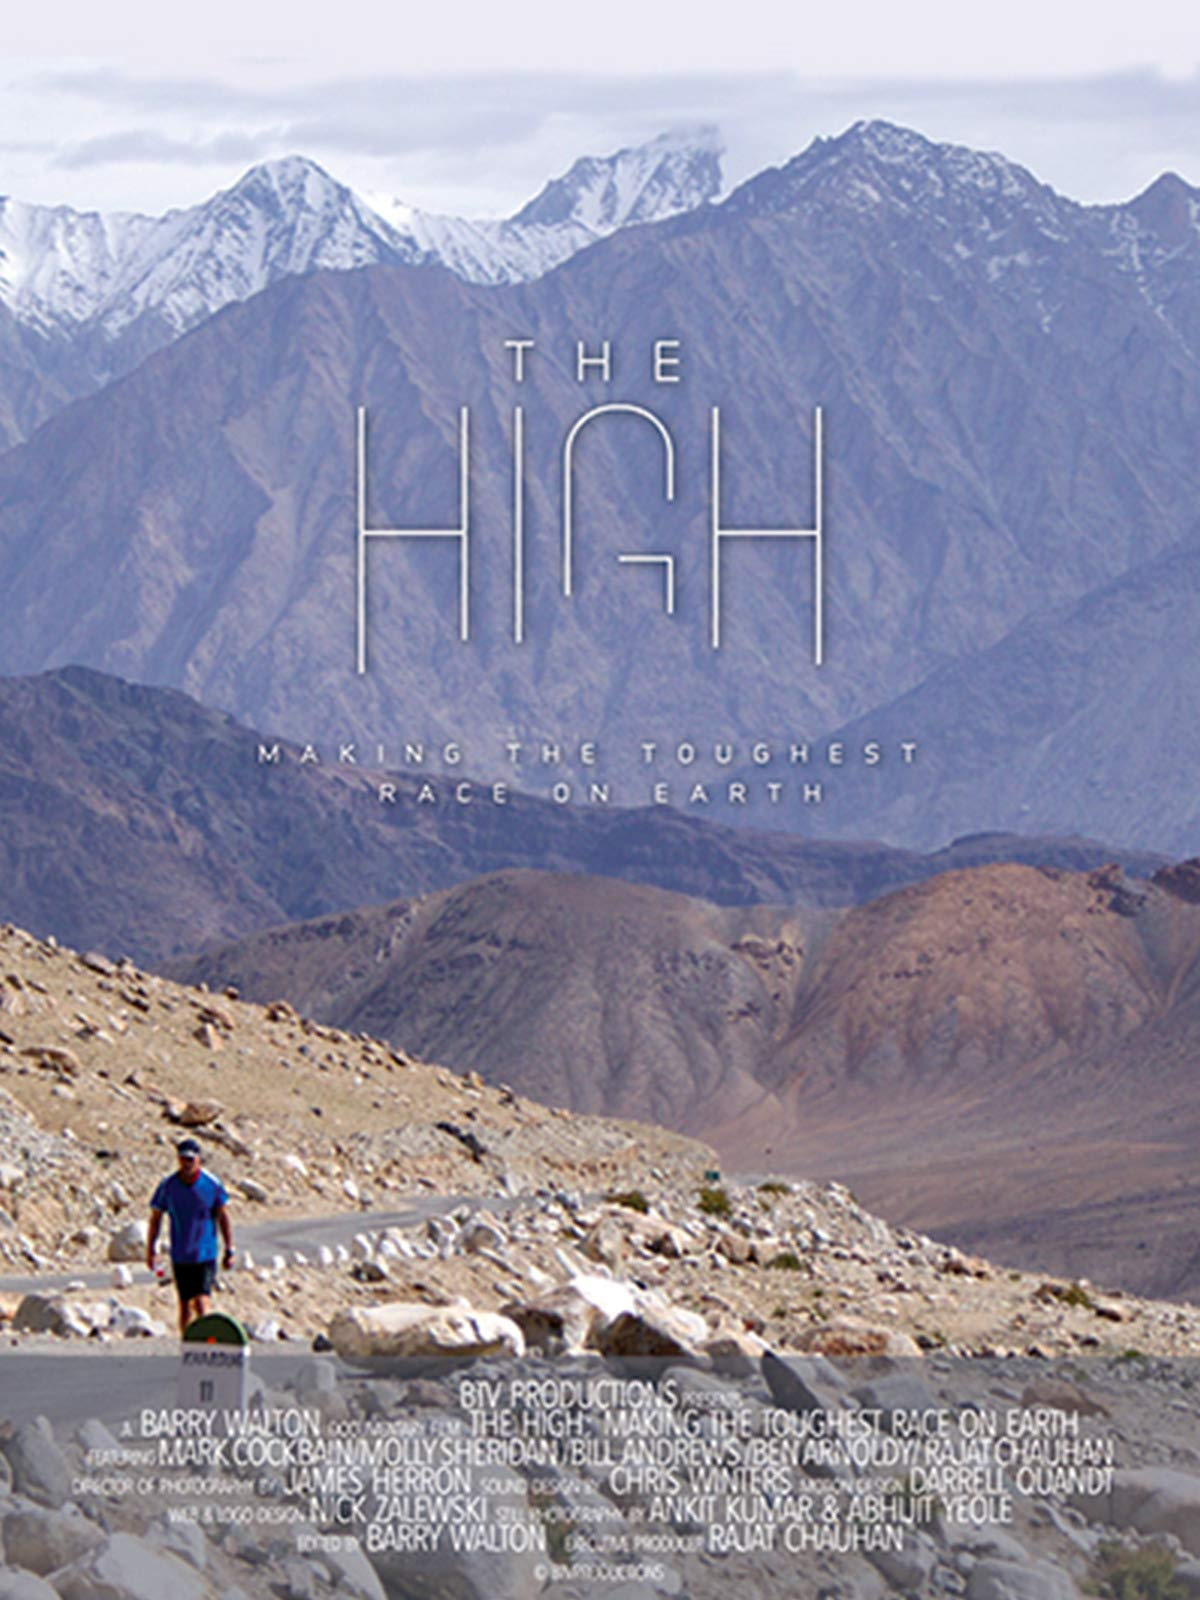 The High - Making the toughest race on Earth on Amazon Prime Video UK